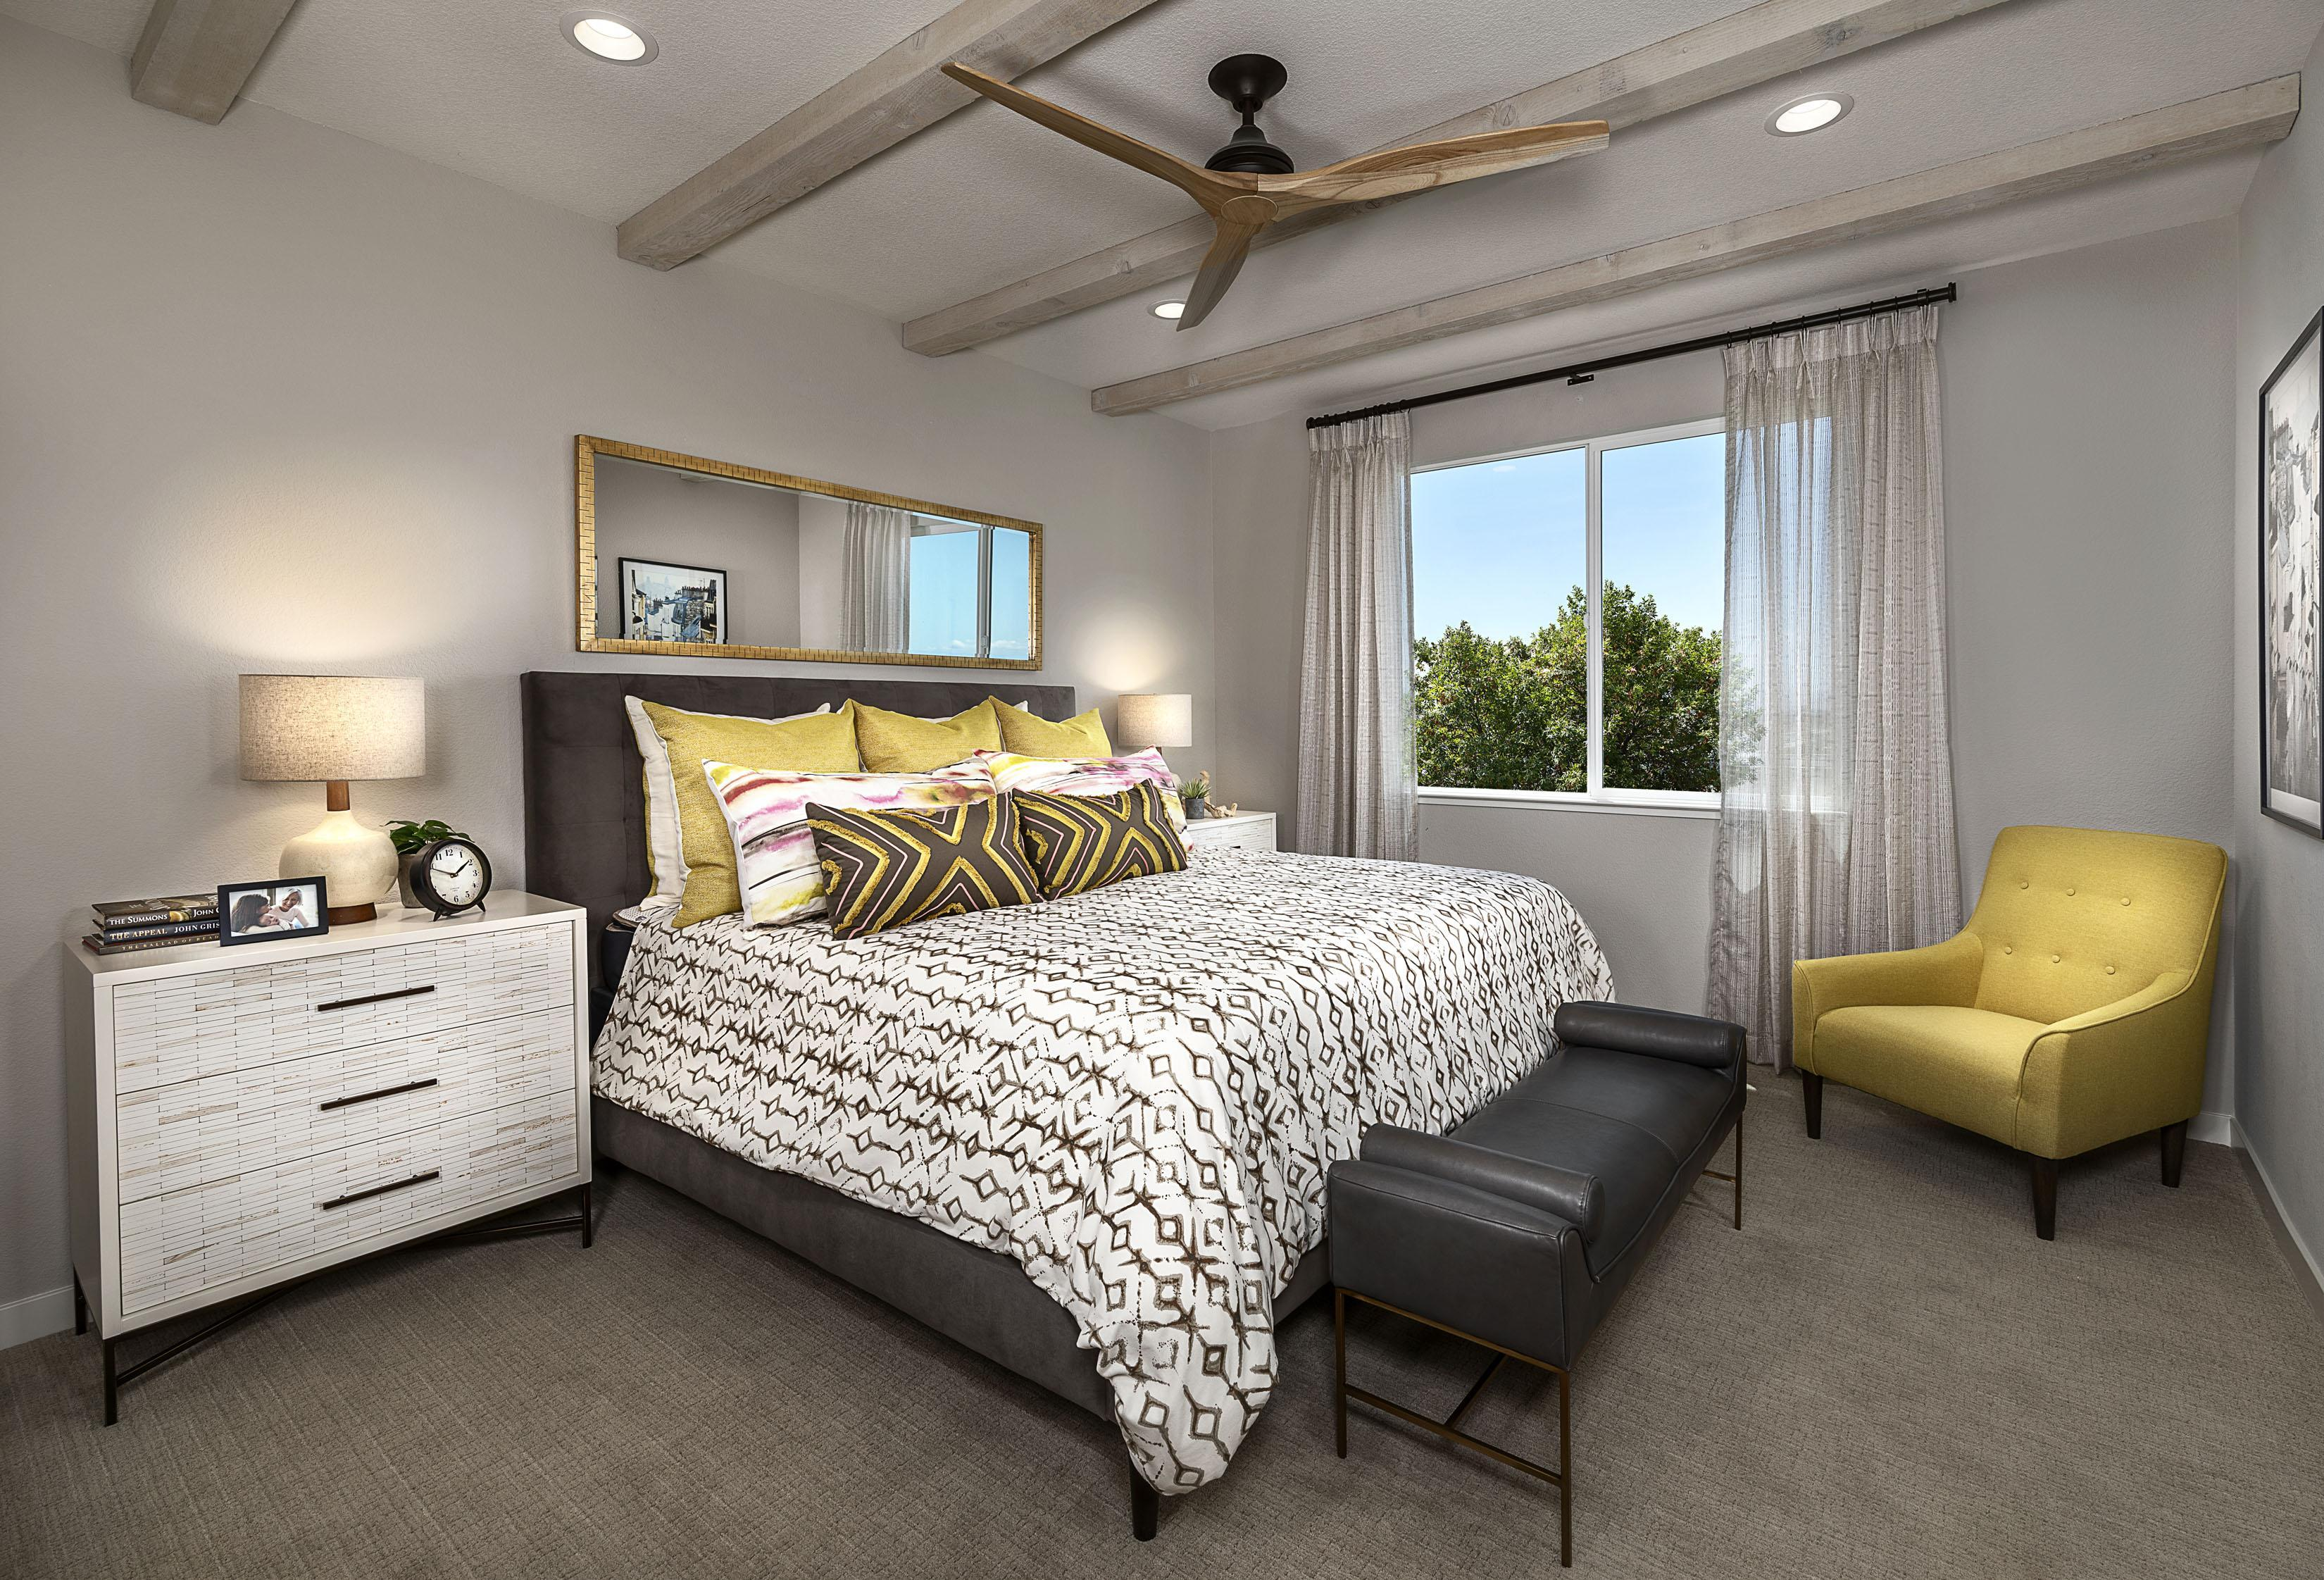 Bedroom featured in the Catalina Residence 1 By Kiper Homes in Stockton-Lodi, CA